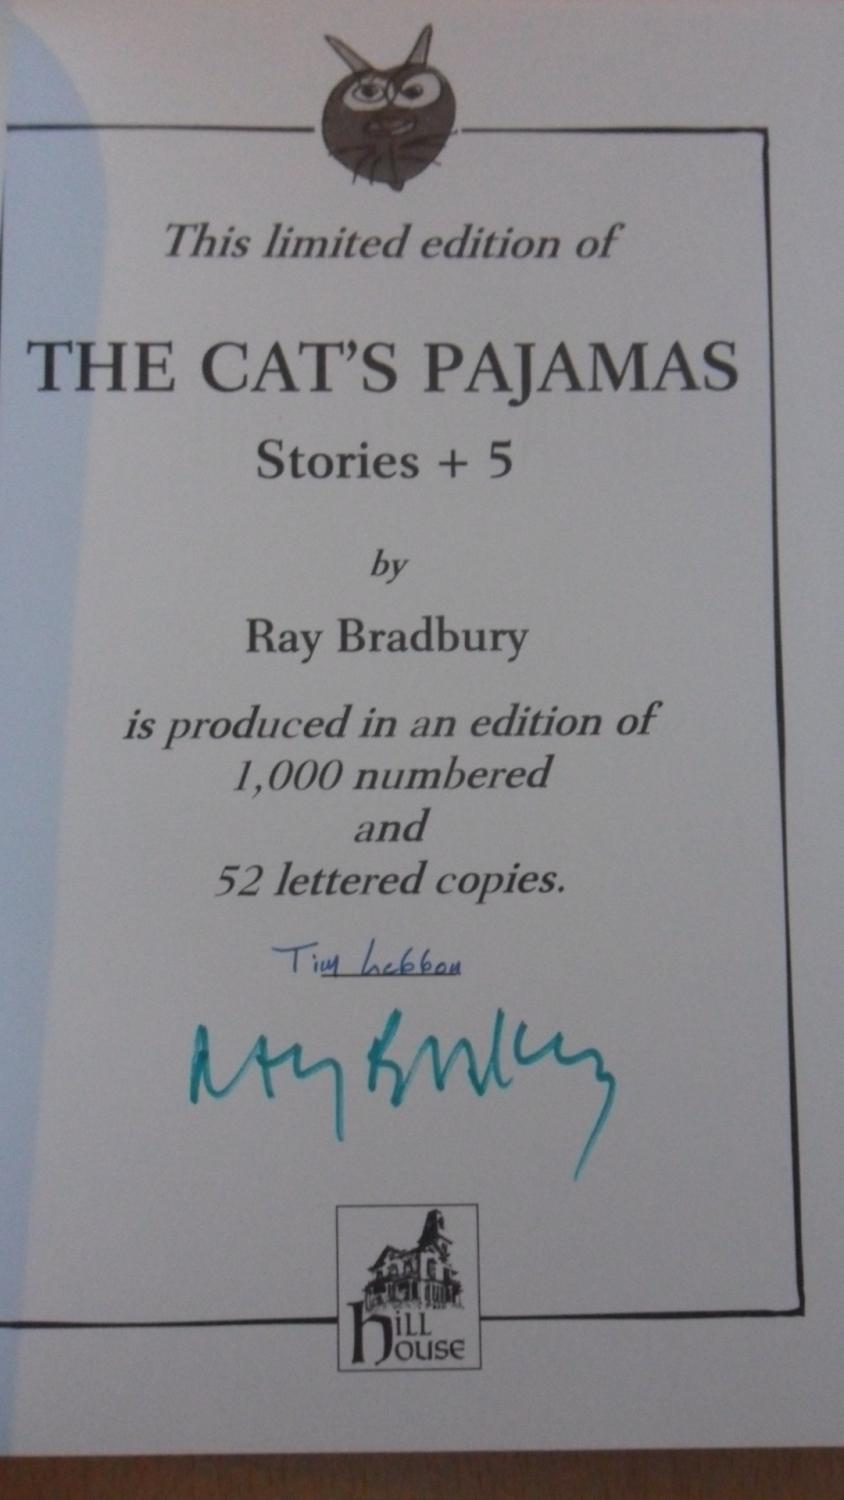 THE CAT'S PAJAMAS - HILL HOUSE SIGNED LIMITED EDITION: Ray Bradbury